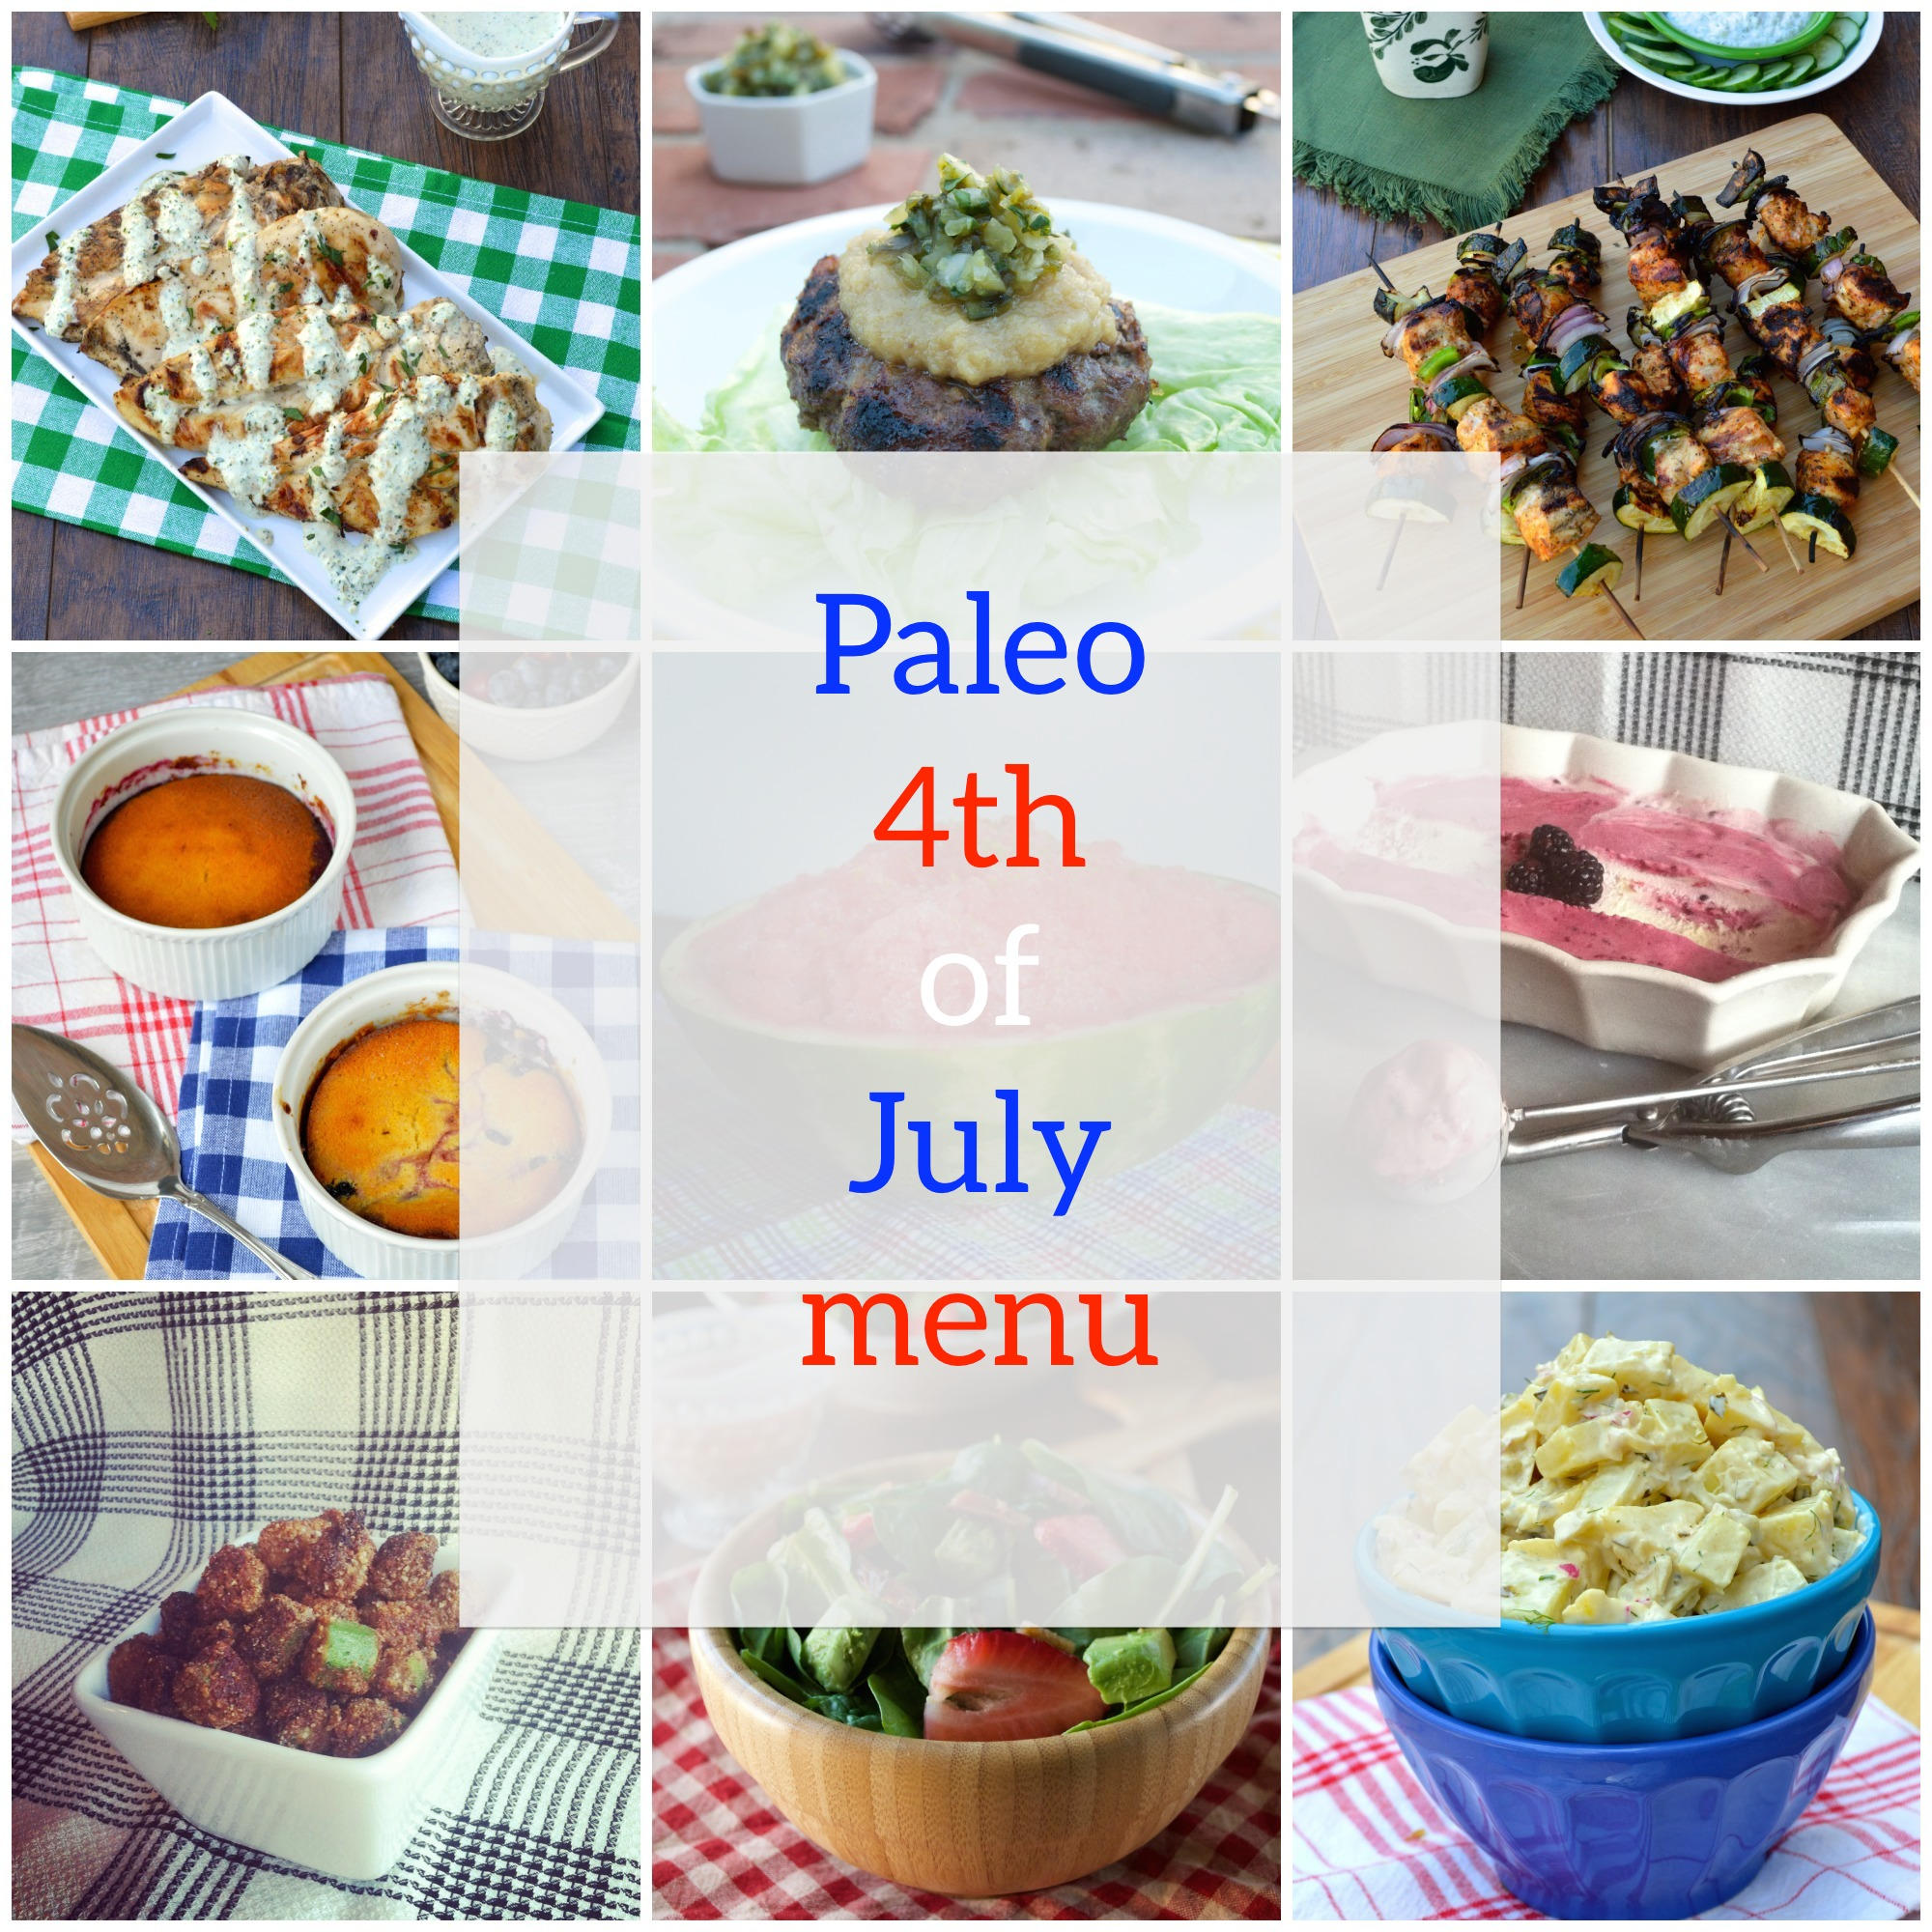 Paleo 4th of July Menu